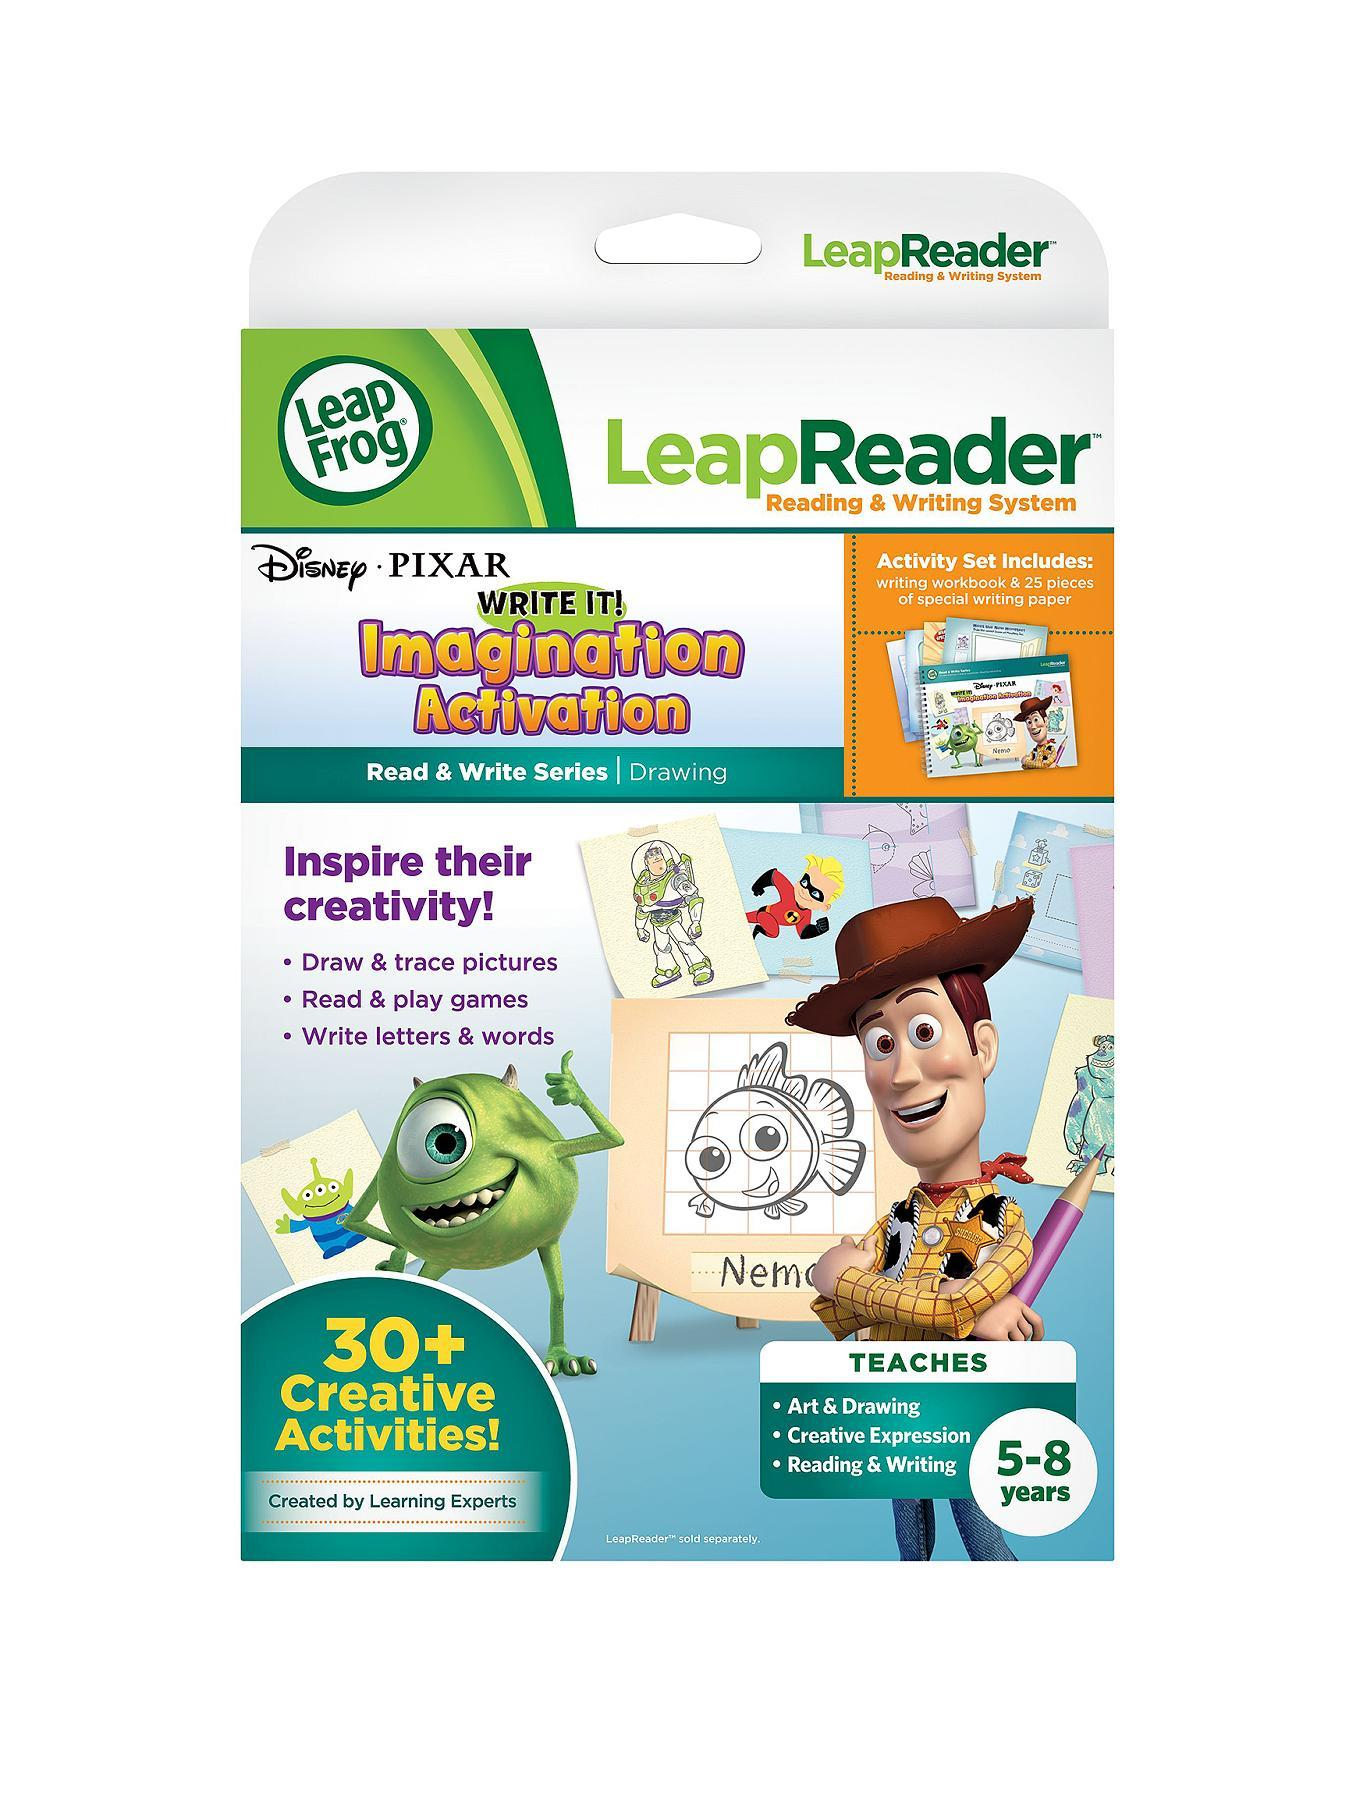 LeapReader Review – Ready, Set, Read & Write #MommyParties